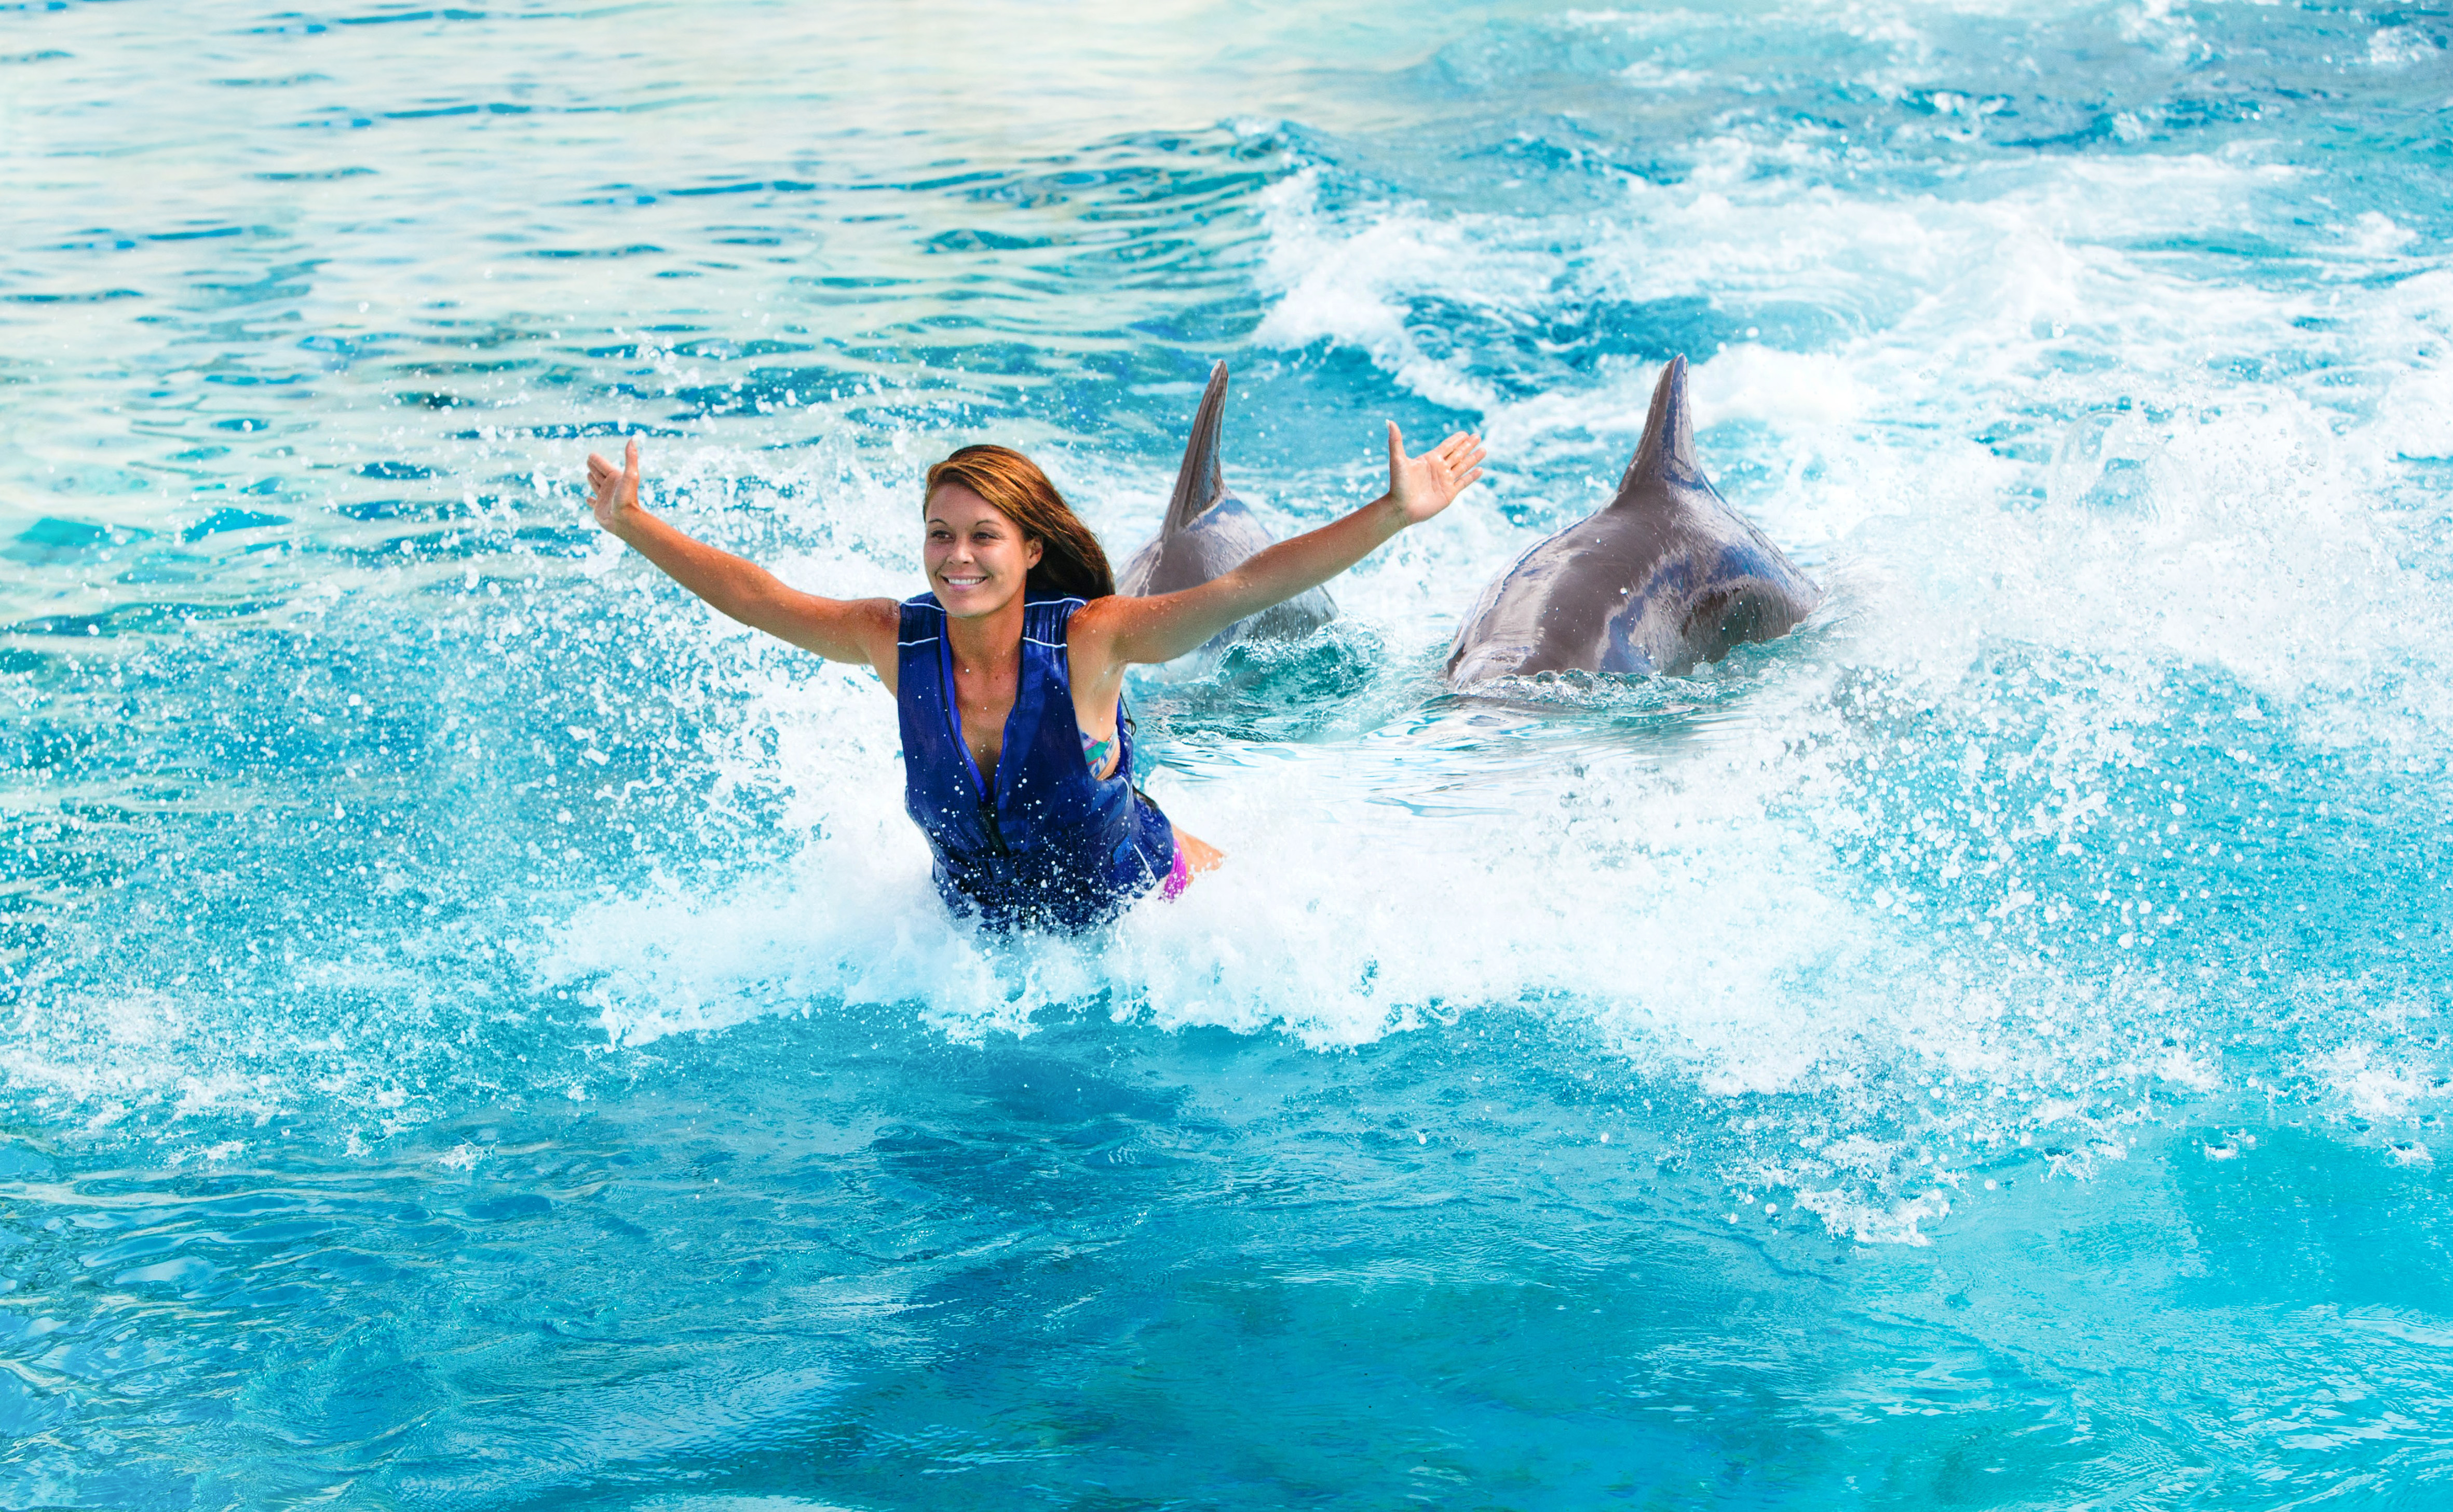 Product Royal Dolphin Encounter - Age 8 and Older